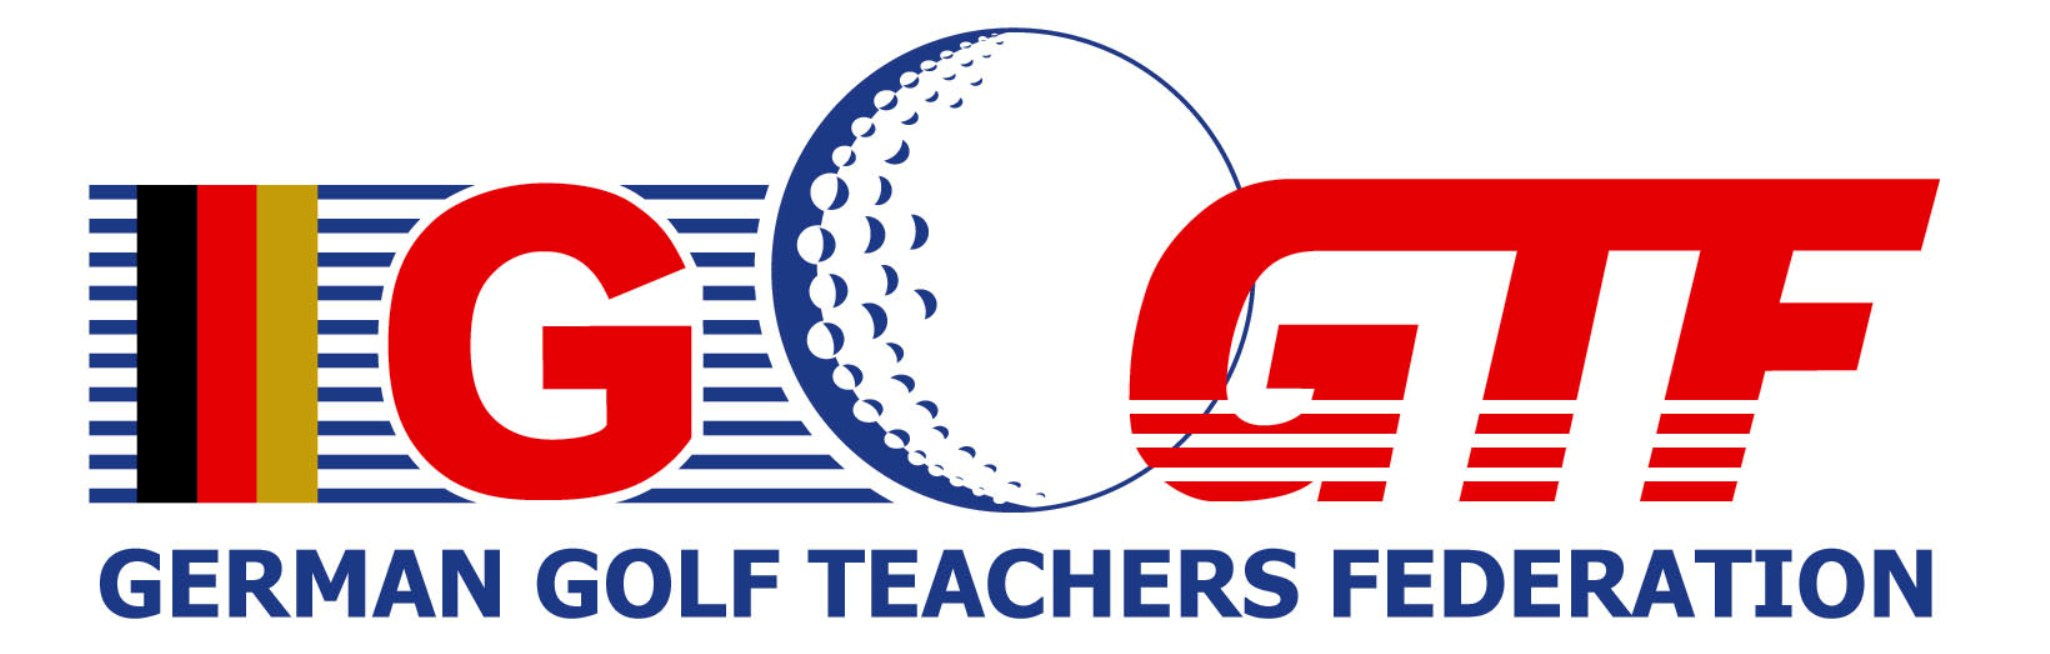 https://golfrange-ffm.de/storage/app/media/Trainer/logos/GGTF%20german%20mit%20Link%2020.5X6.5.jpg